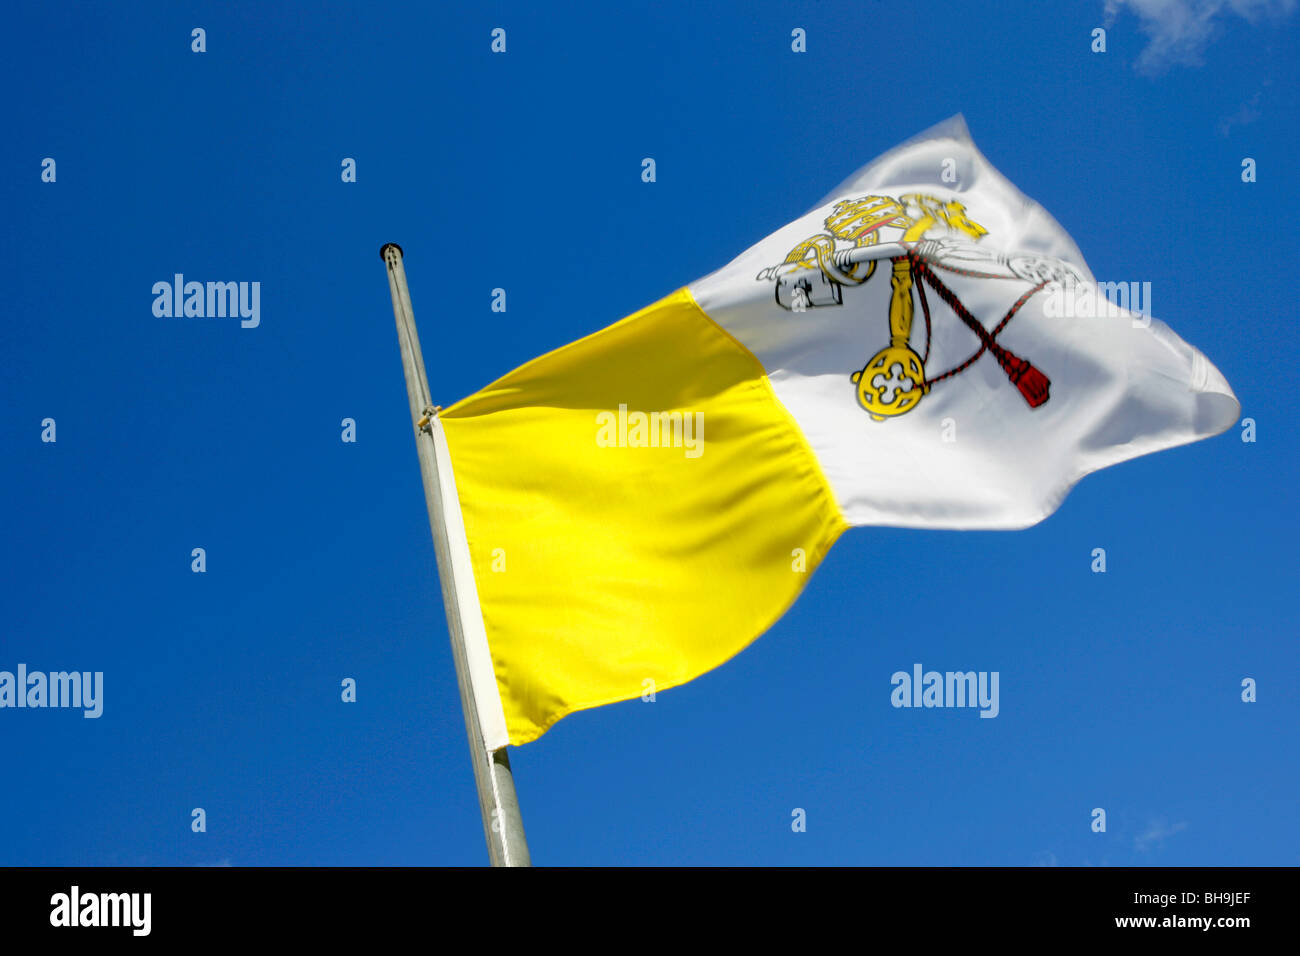 flag, Vatican,half mast,half hoist,hoist,death of Pope,respect,mark of respect,mourning, - Stock Image